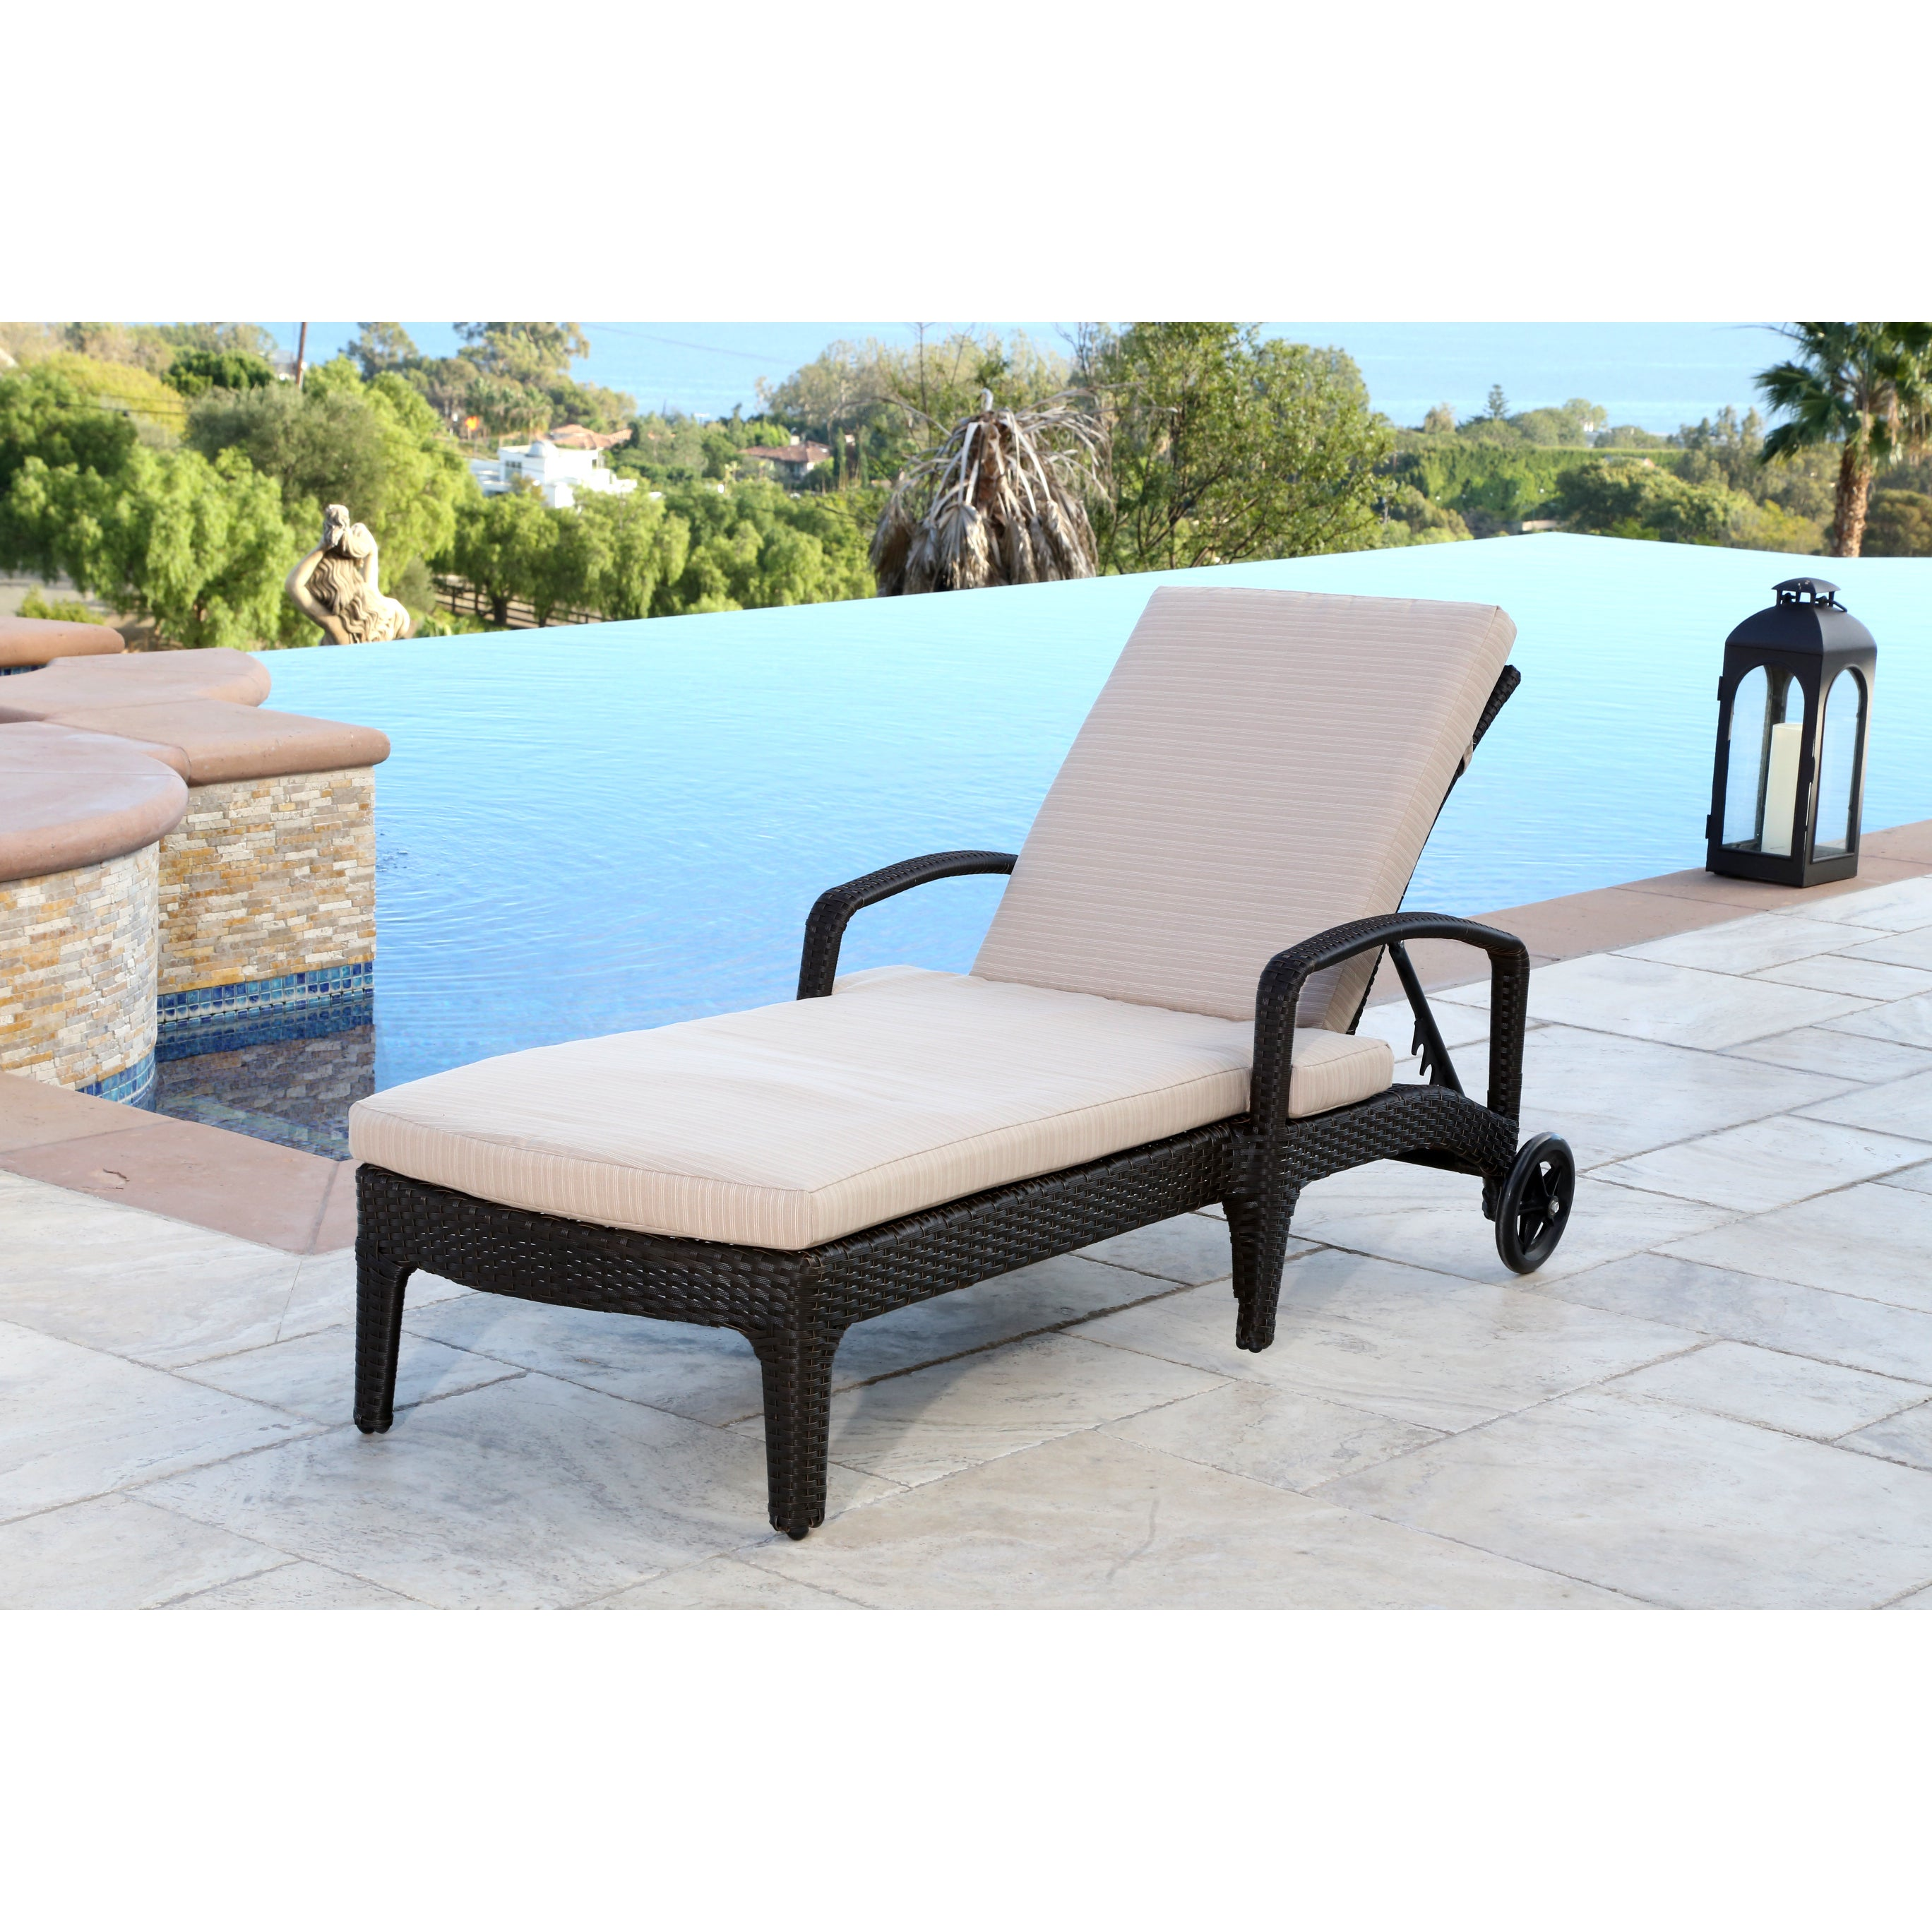 outdoor lounge of resin chronicles chaise lounges sling on plastic the with furniture usa chairs impressive